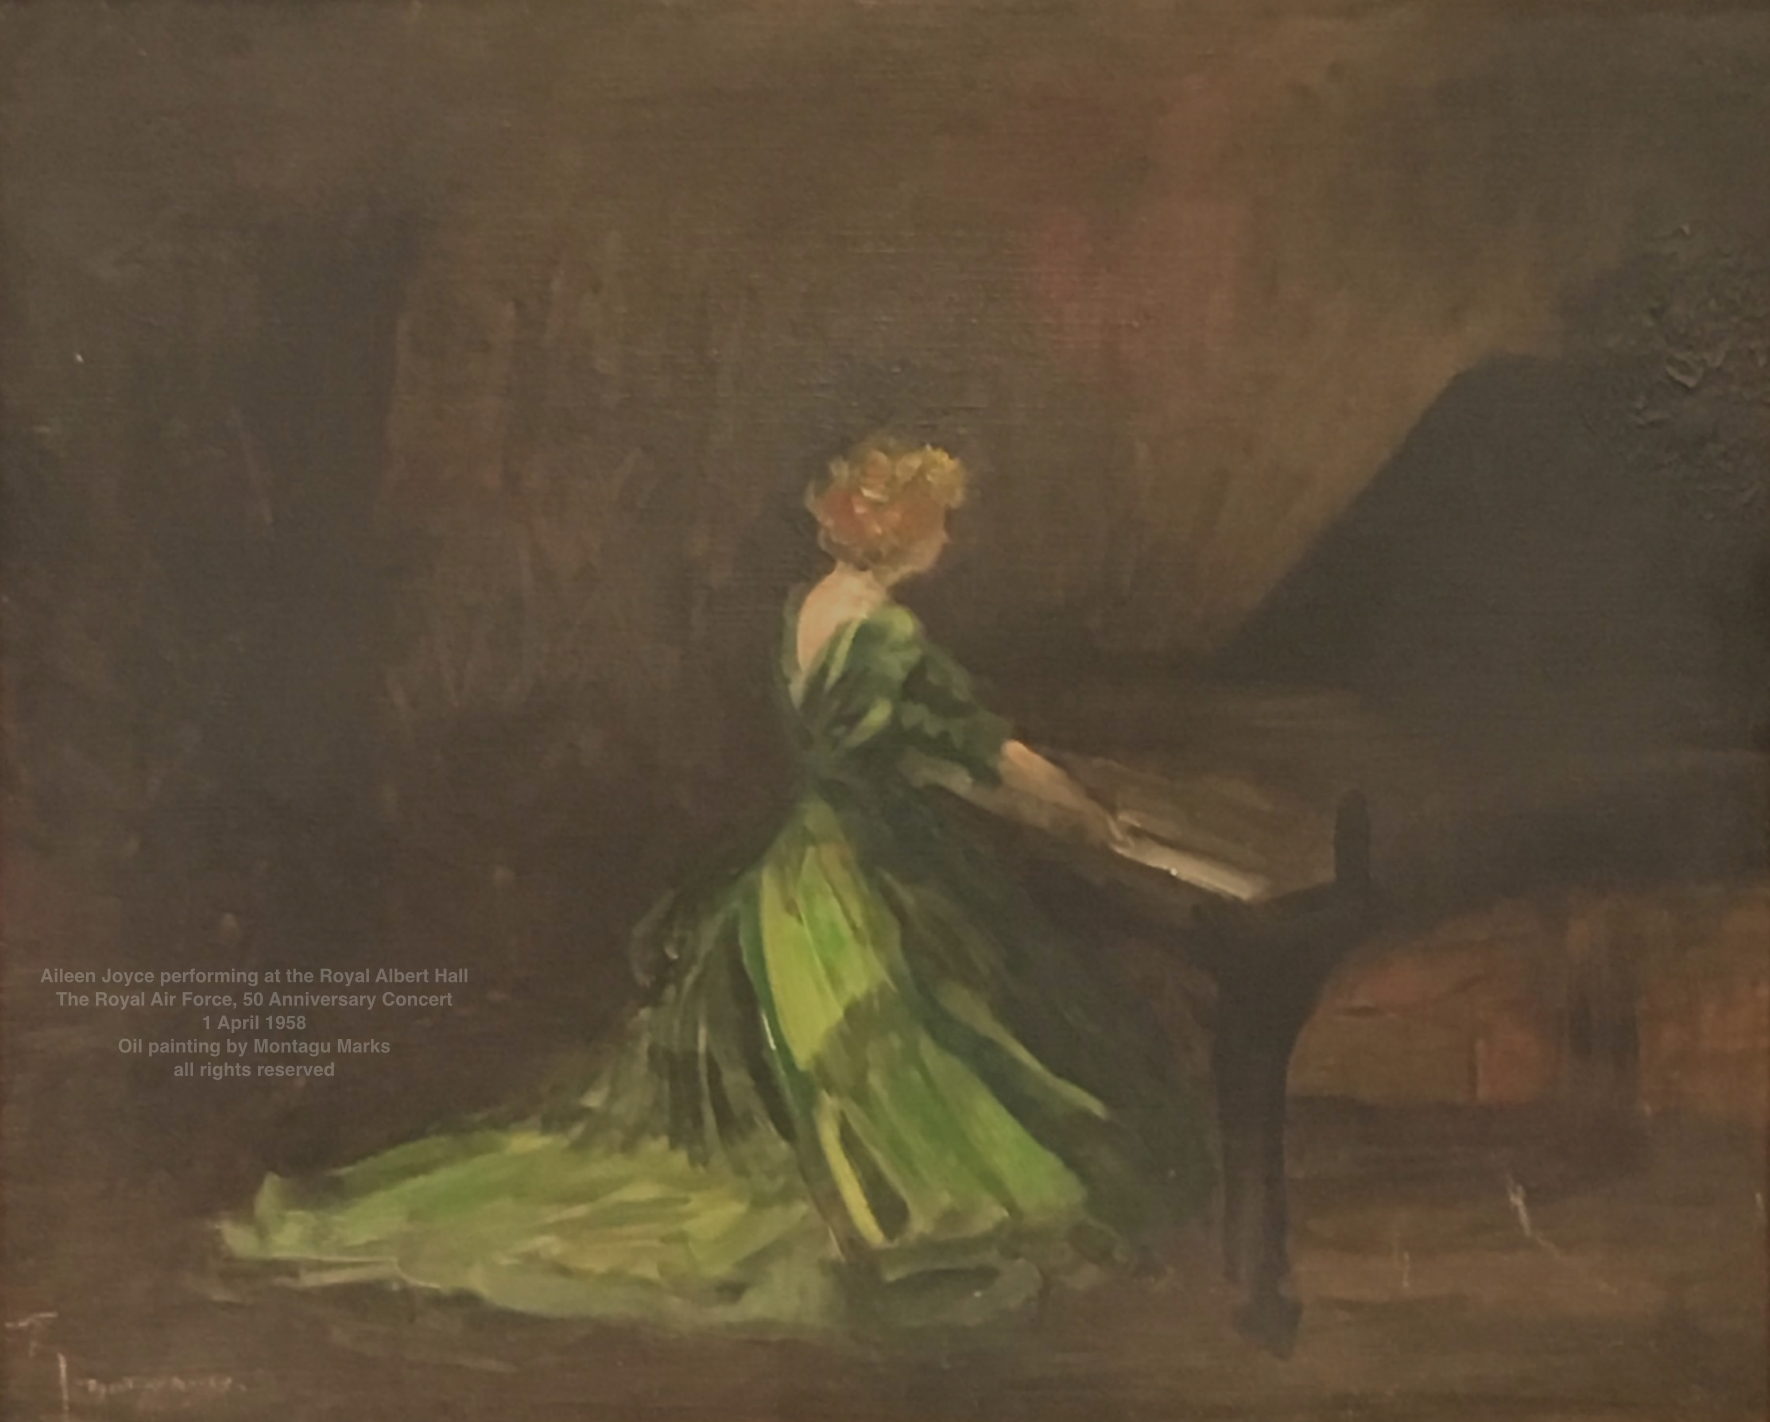 Aileen Joyce performing at the Royal Albert Hall: The Royal Air Force, 50 Anniversary Concert, 1 April 1958. Oil painting by Montagu Marks all rights reserved. Private Collection.